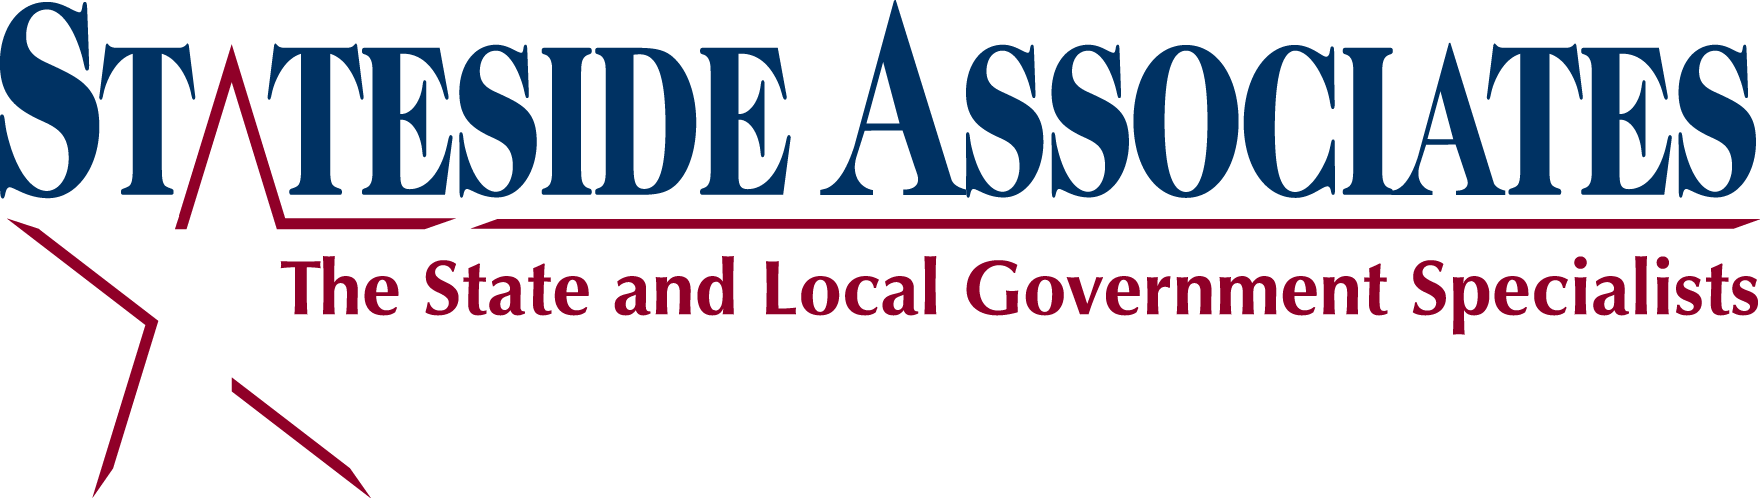 Stateside Associates Announces Contribution To Navy-Marine Corps Relief Society Image